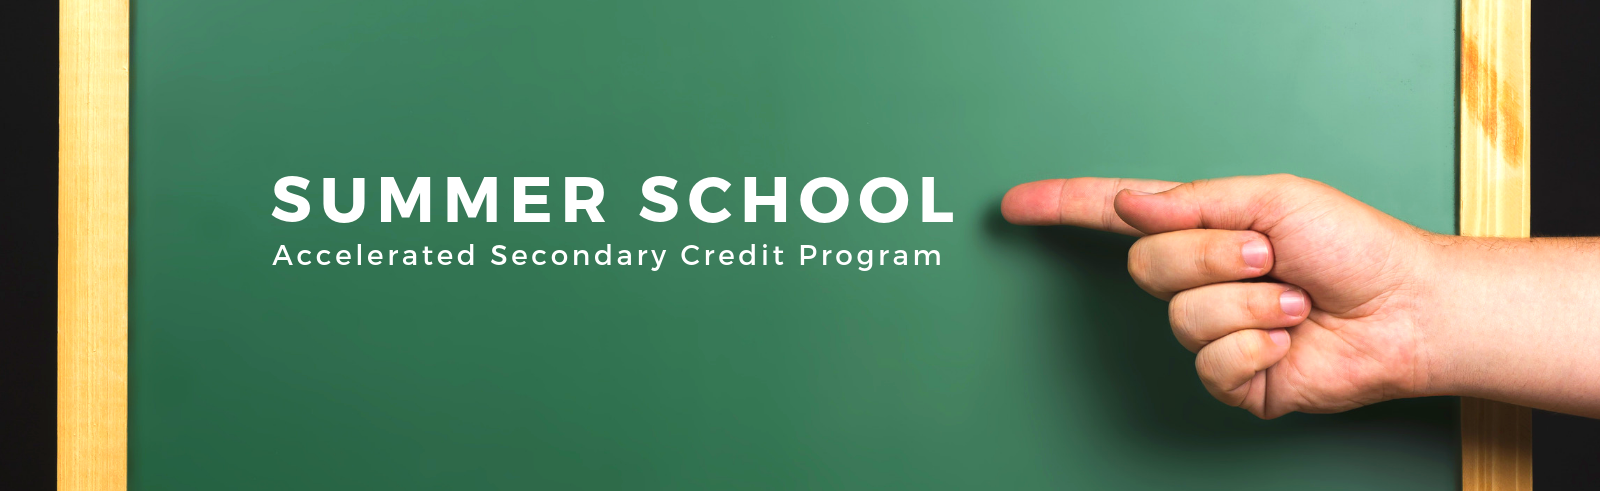 Summer School - Accelerated Credit Program Banner